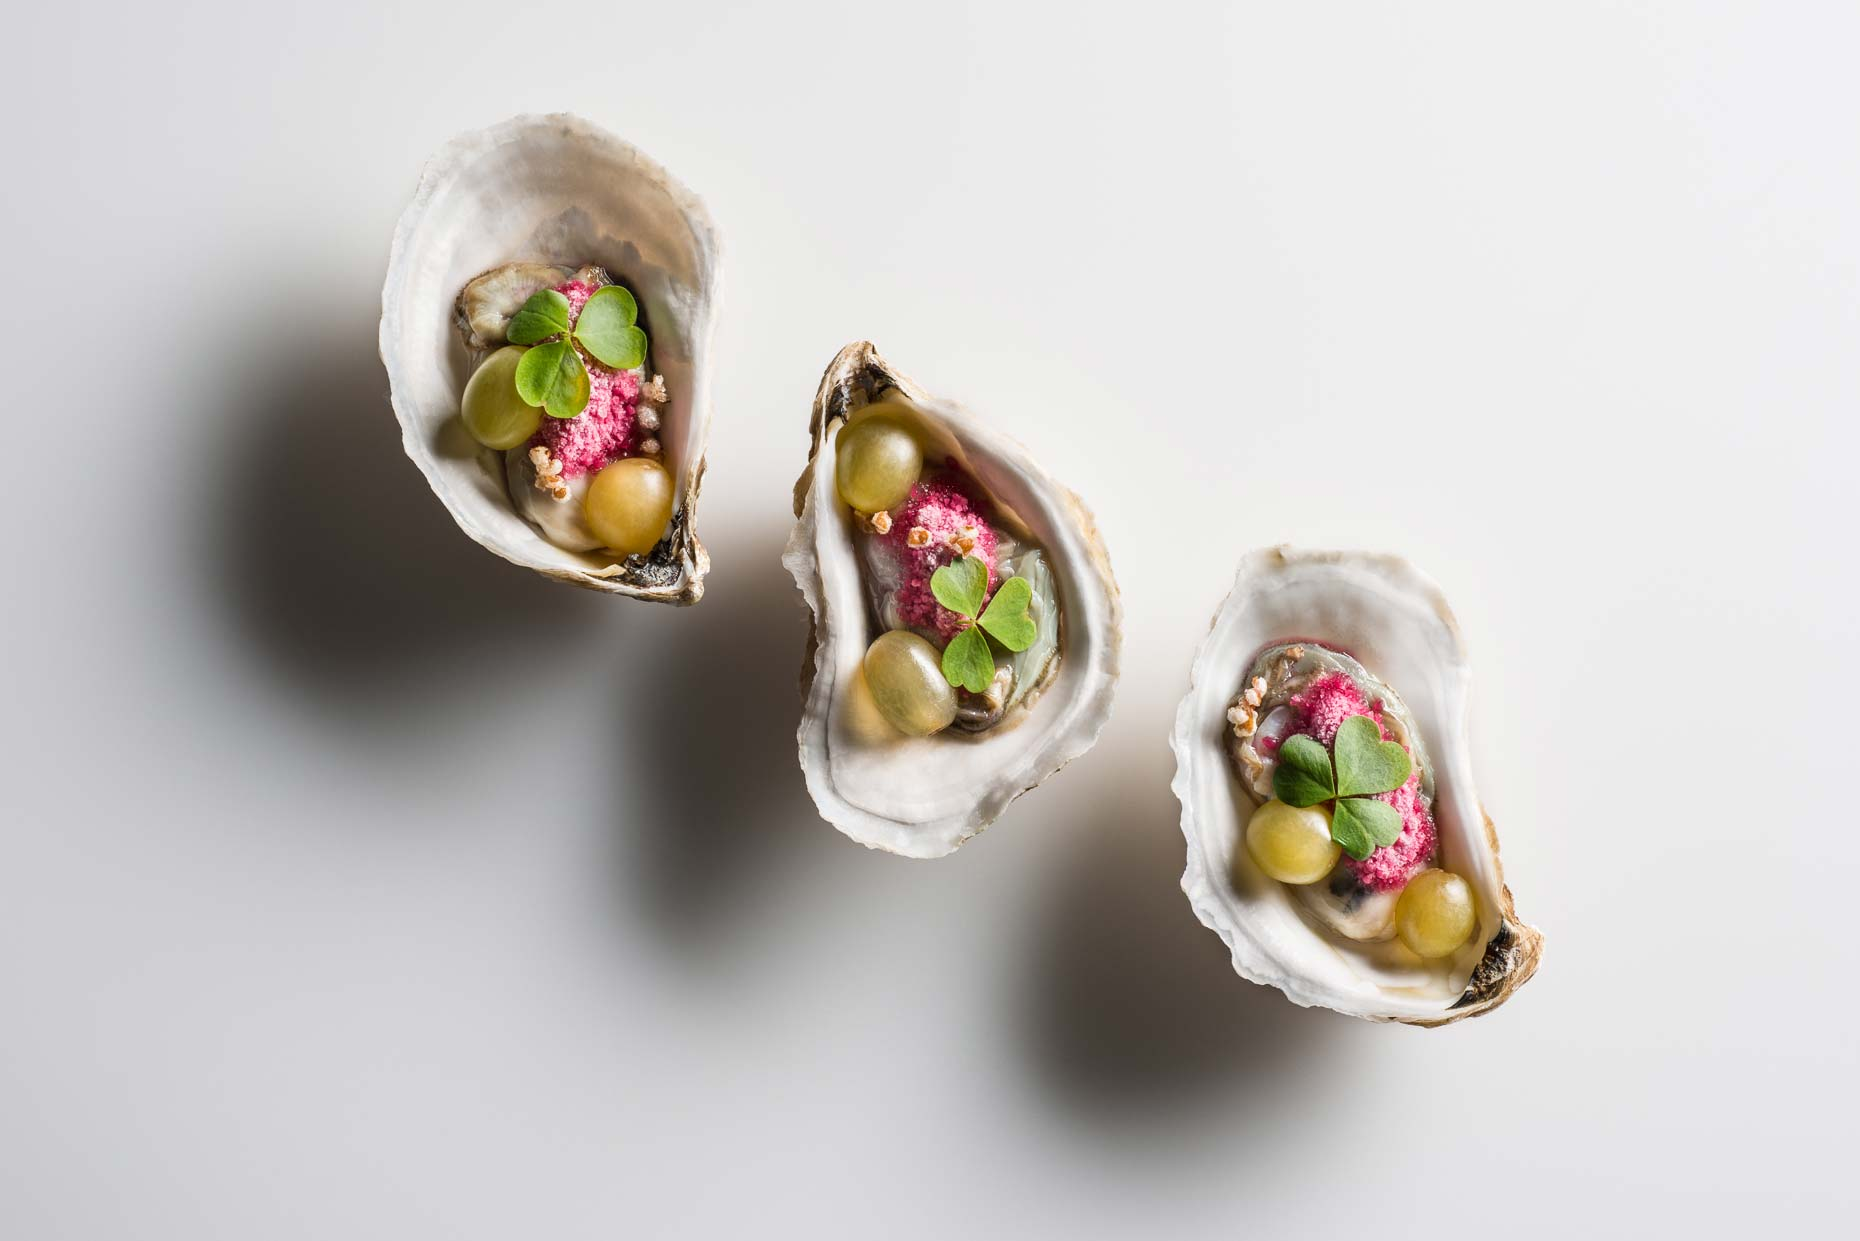 Three Widow's Hole Oyster with baby green grapes topped with lucky sorrel, crispy bulgur wheat, and a dusting of grape mignonette snow on a white background. Prepared by Daniel Humm, Chef/Owner of Eleven Madison Park, NY.